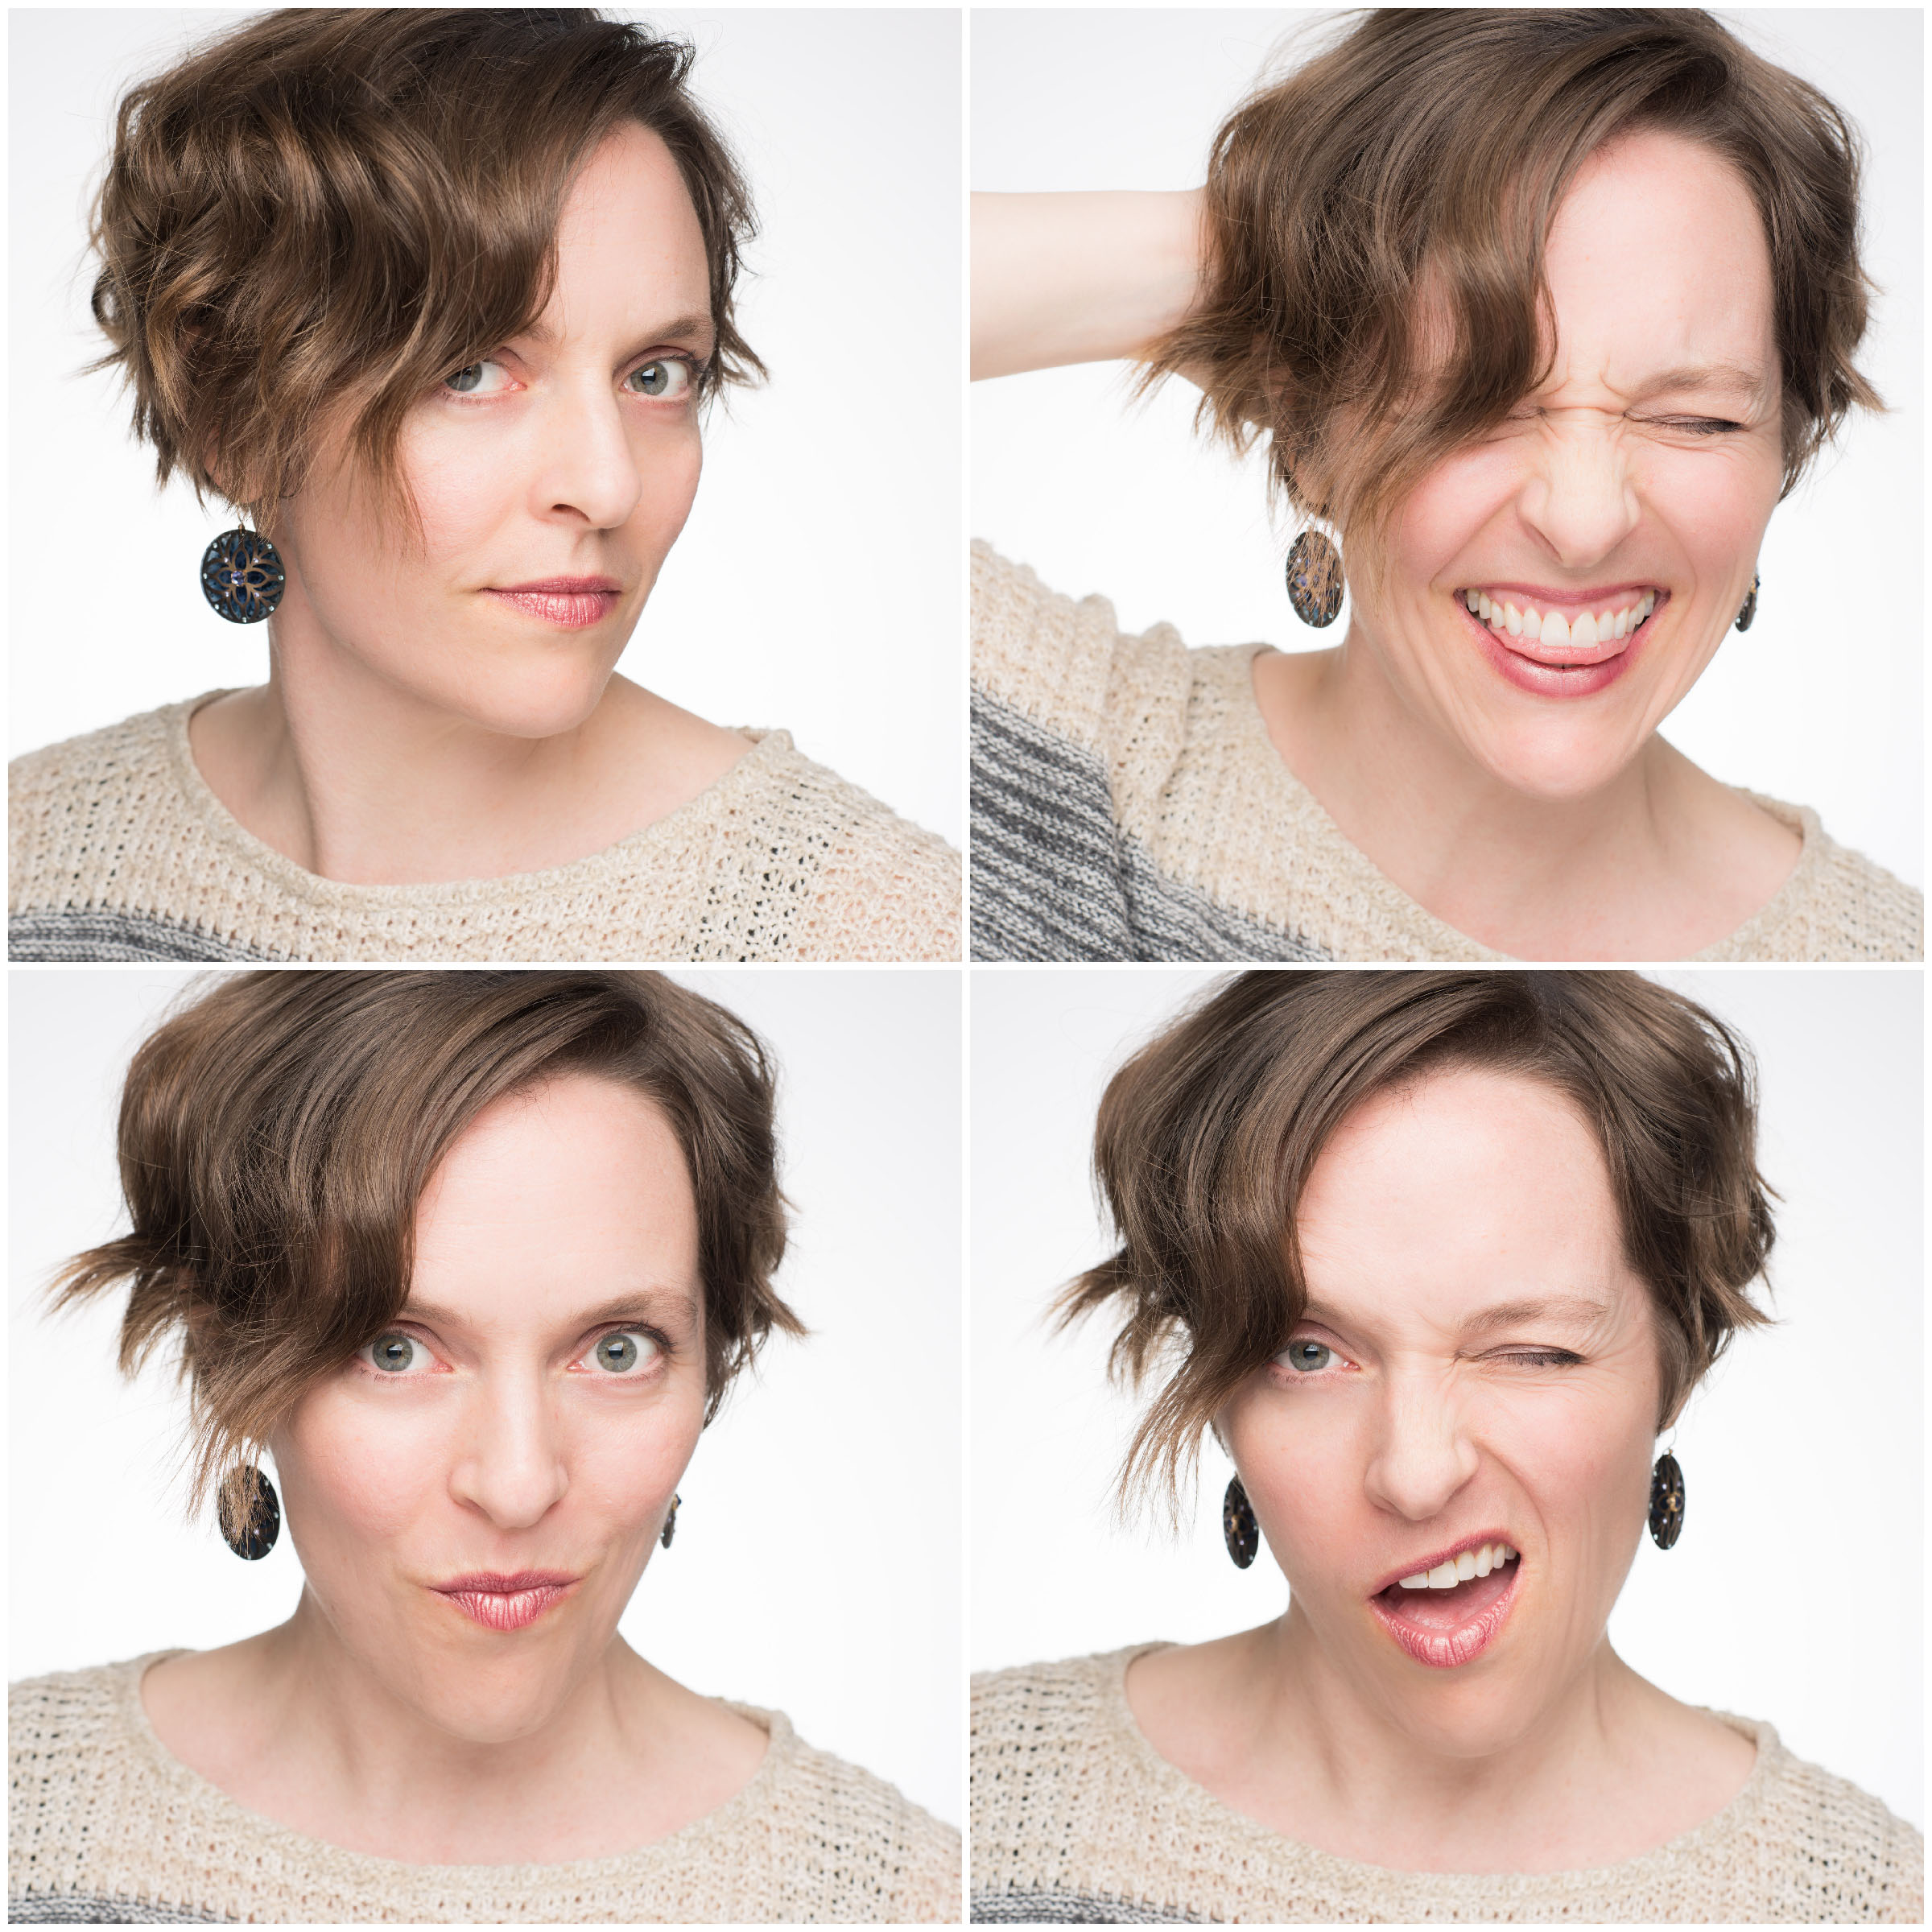 Woman posing for four sassy headshots.